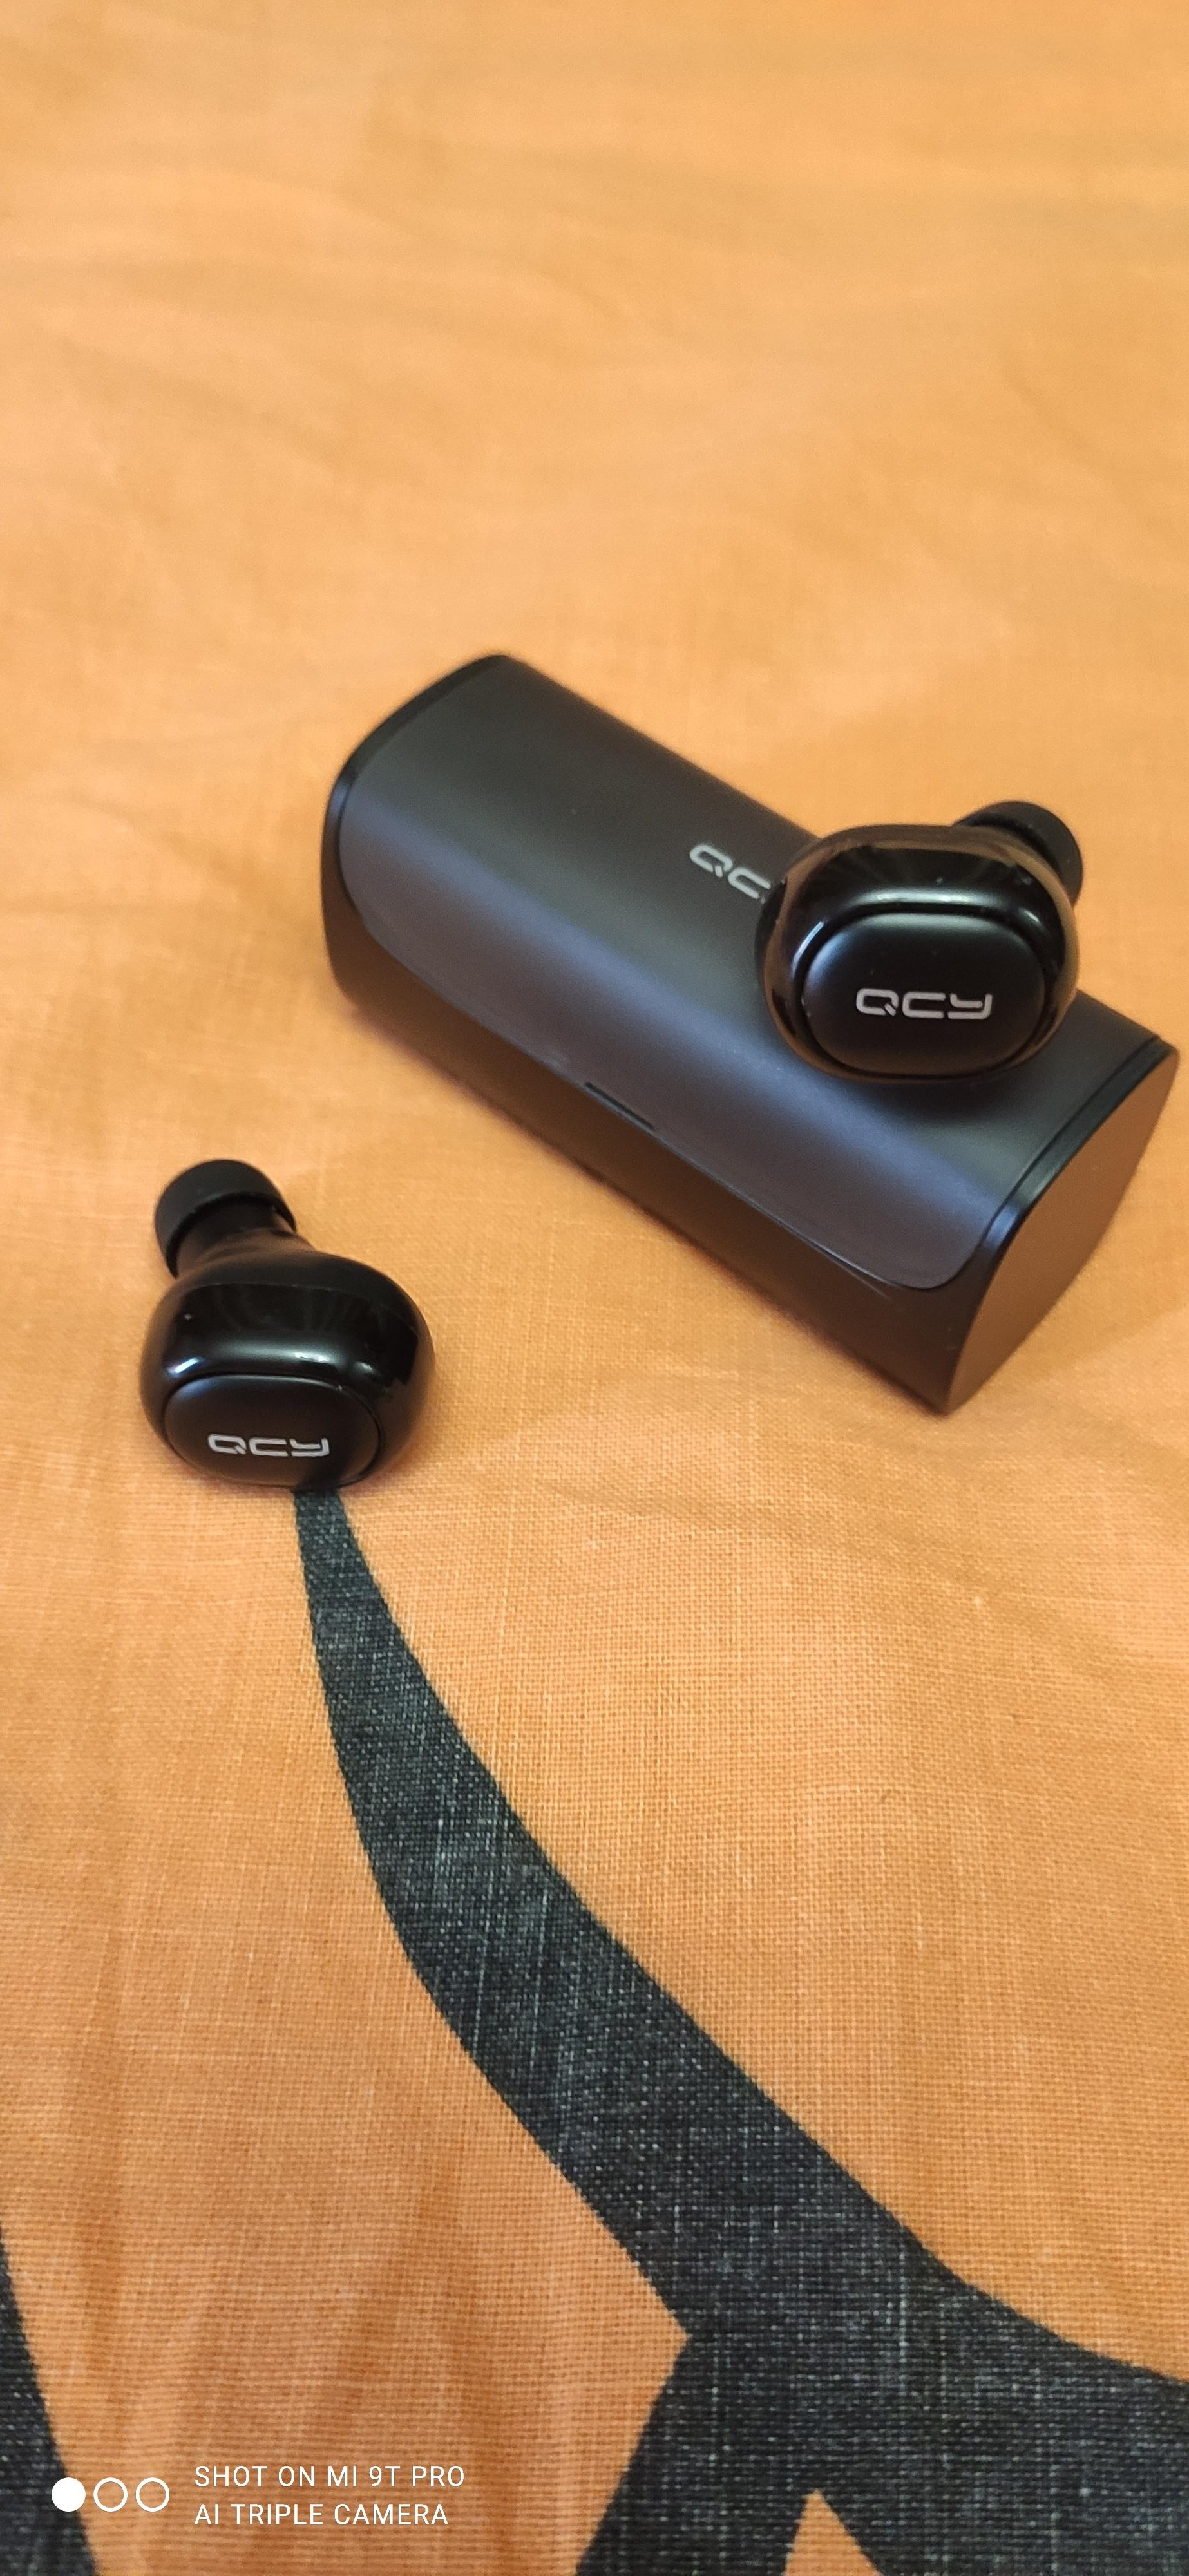 QCY Q29 TWS business Bluetooth earphones wireless 3D stereo headphones headset and power bank with microphone handsfree calls|headset bluetooth wireless|bluetooth earphonebusiness bluetooth earphones - AliExpress